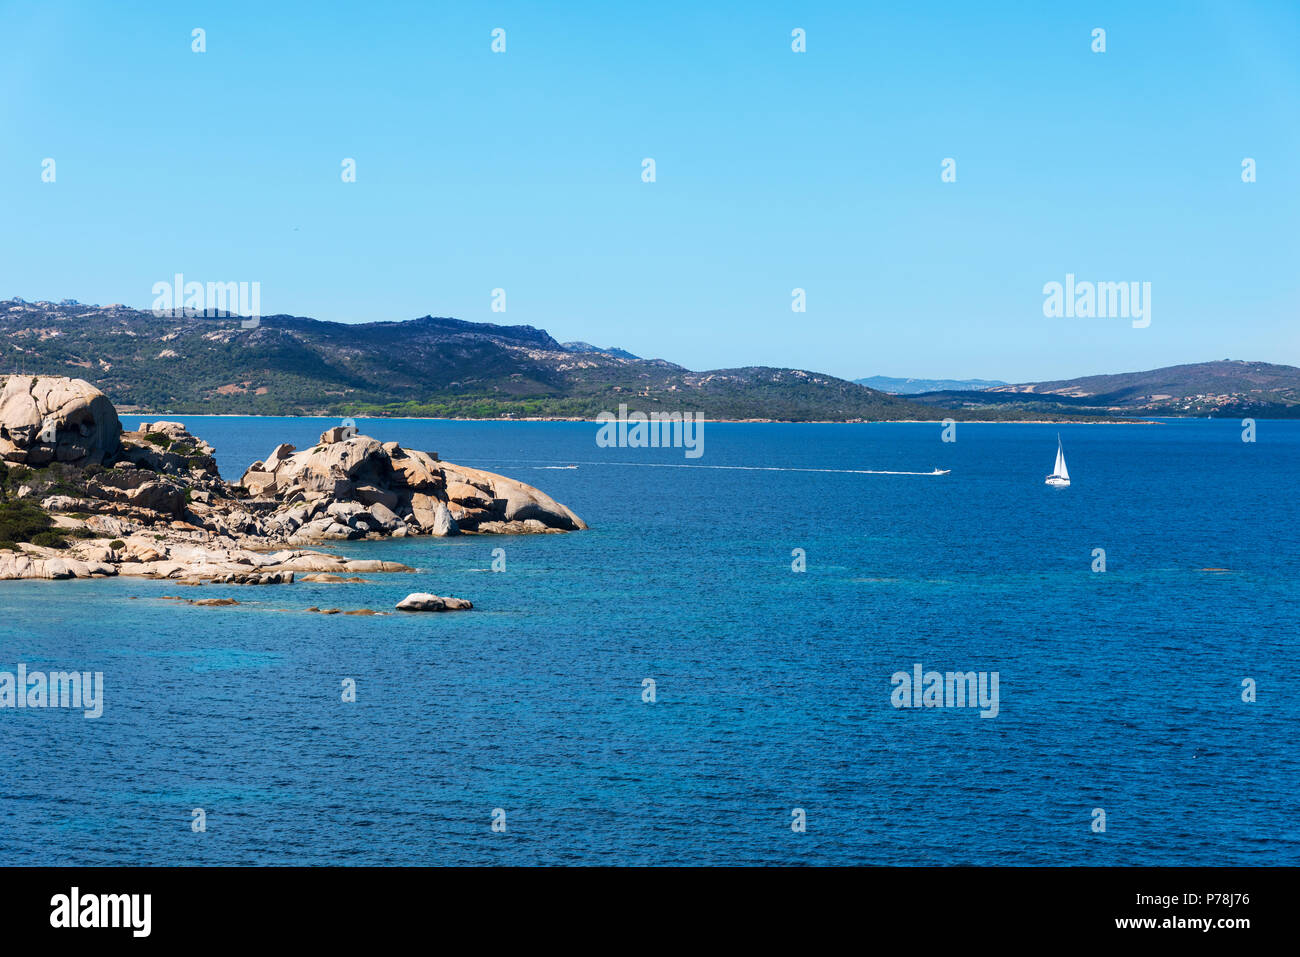 a view of the Mediterranean sea and a group of rock formations in a quiet beach in the coast of Baja Sardinia, in the famous Costa Smeralda, Sardinia, - Stock Image